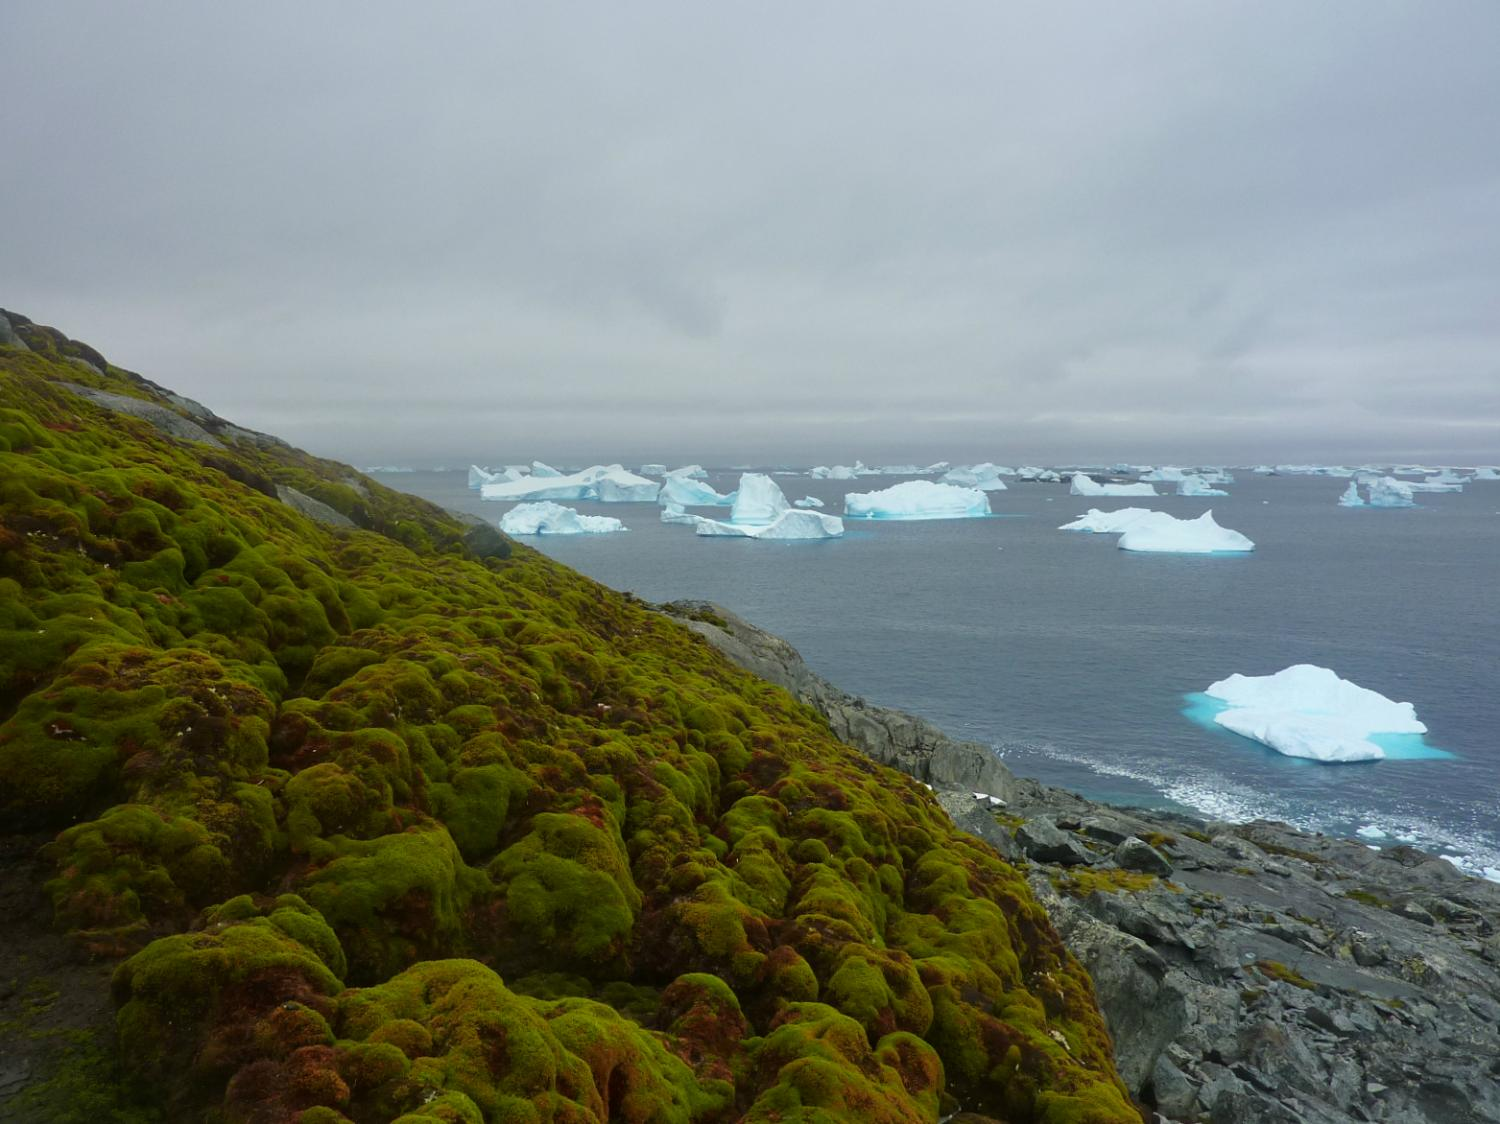 Antarctica turns greener as climate changes